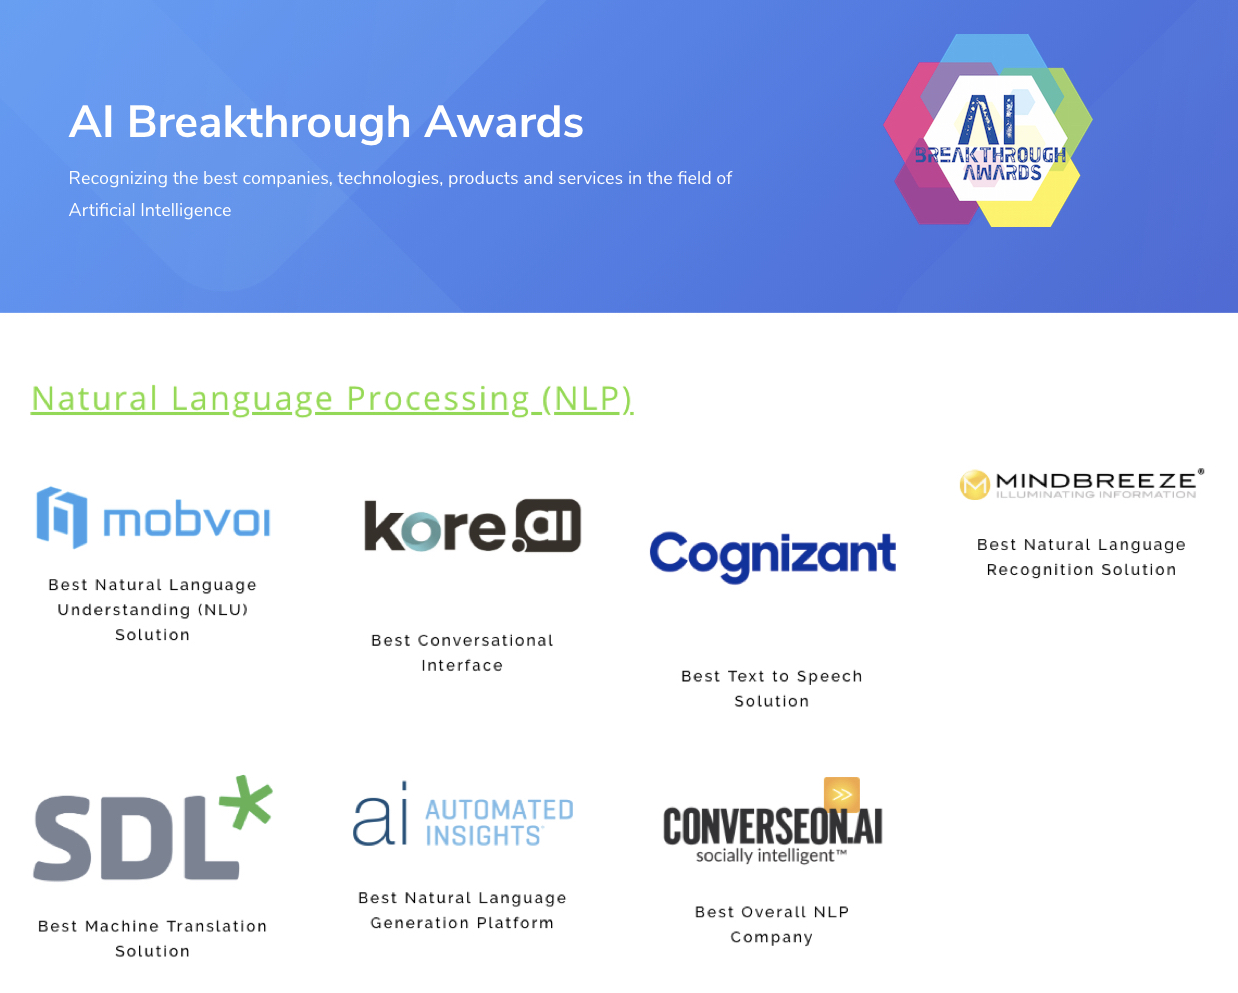 出门问问获2019 AI Breakthrough Awards